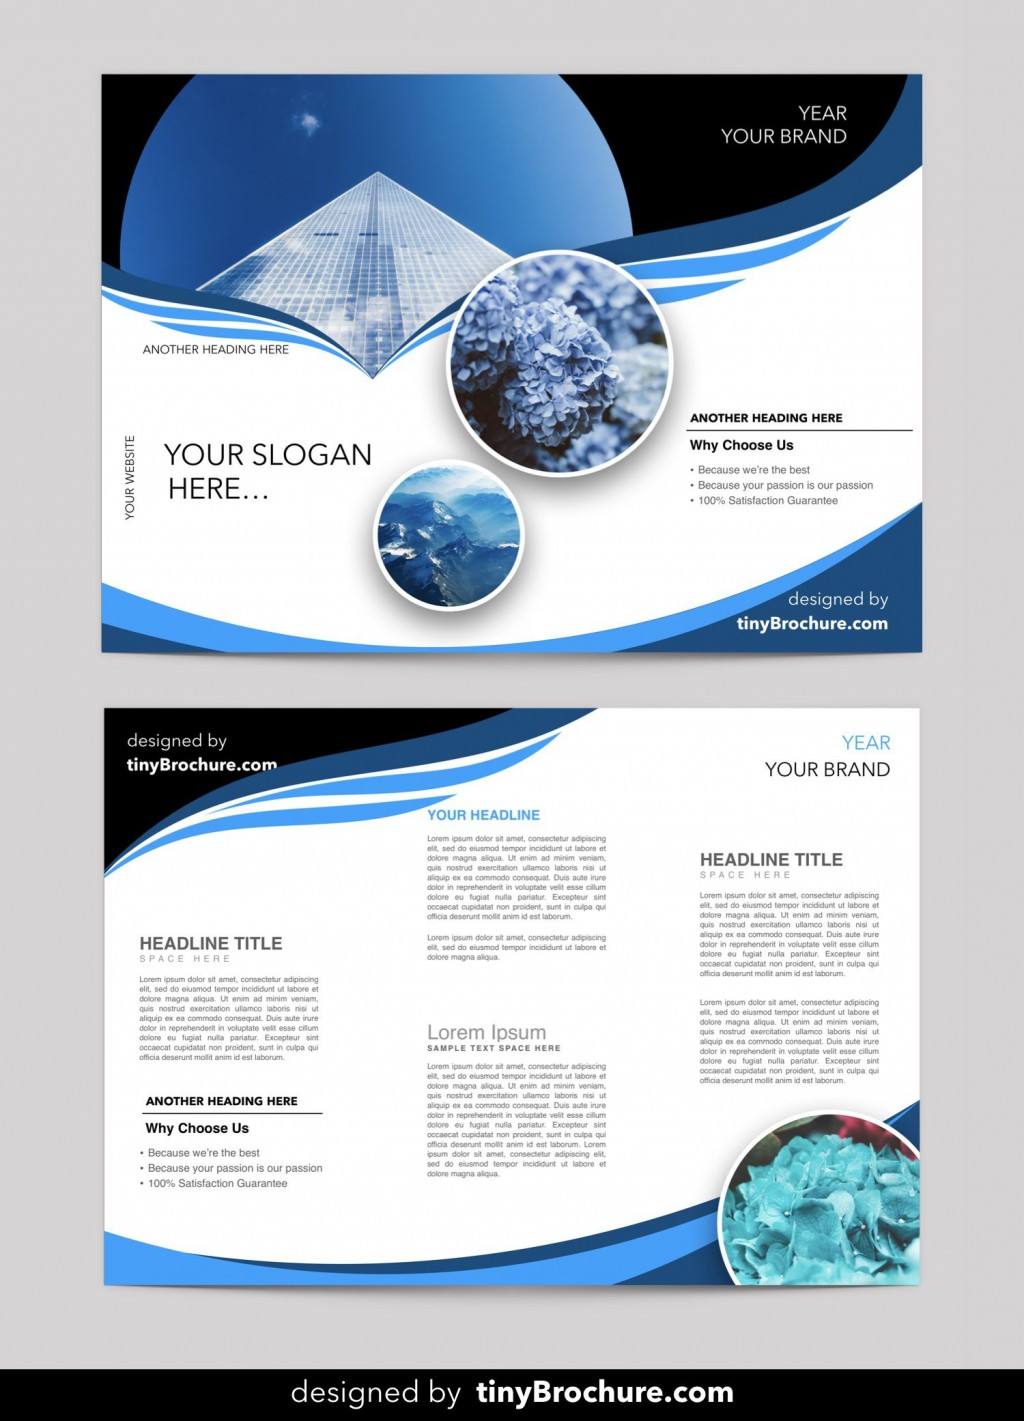 002 Awesome Download Template For Word Image  Wordpres Free Resume 2007 Addres LabelLarge